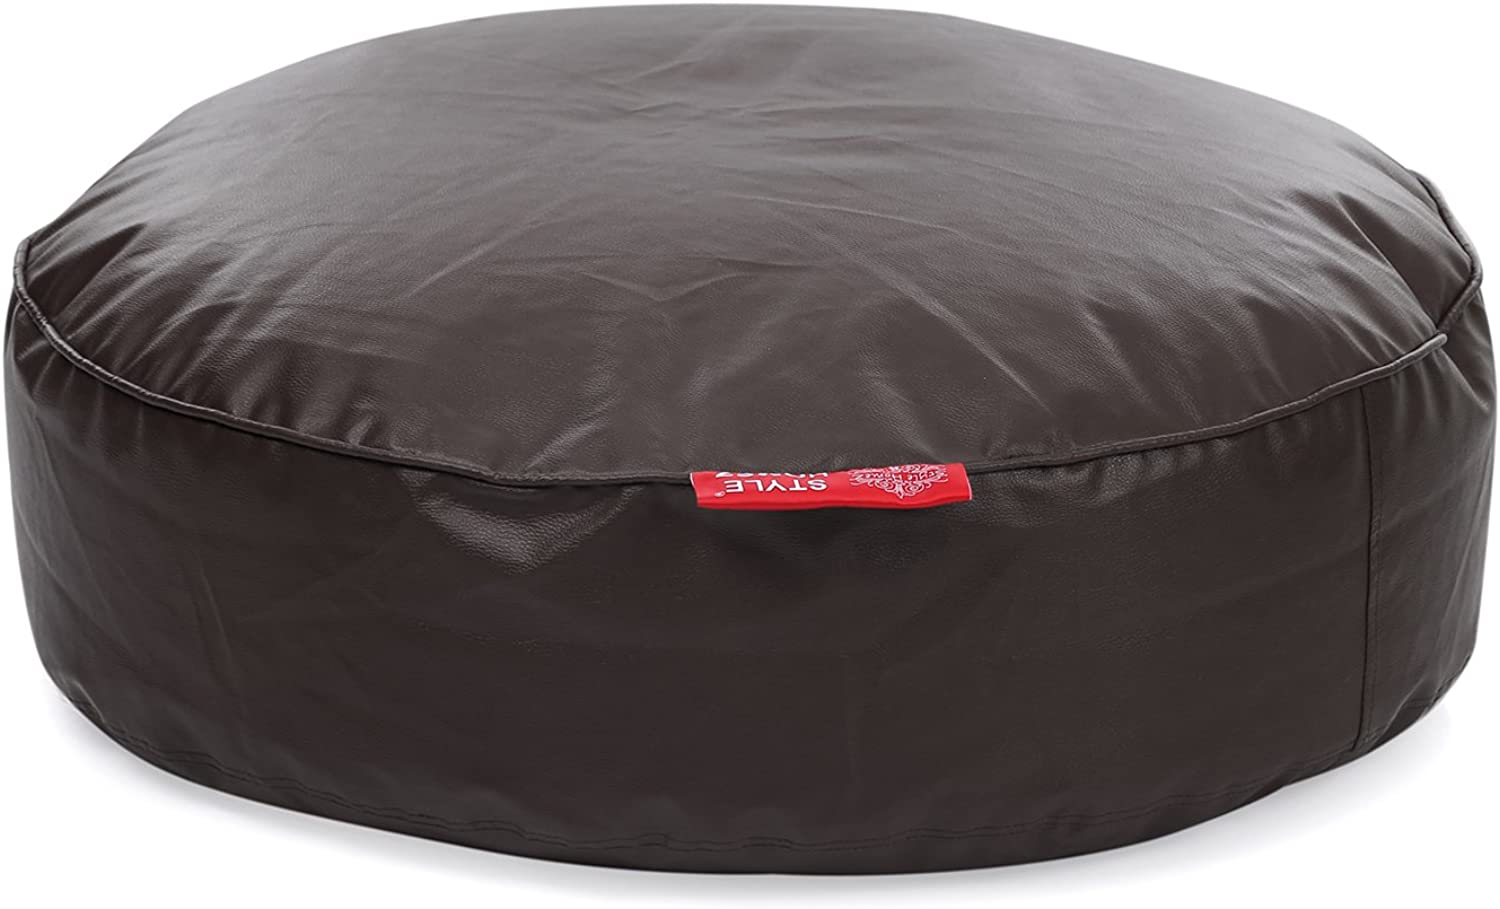 Style Homez Classic Round Floor Cushion XXL size Chocolate Brown color Cover Only